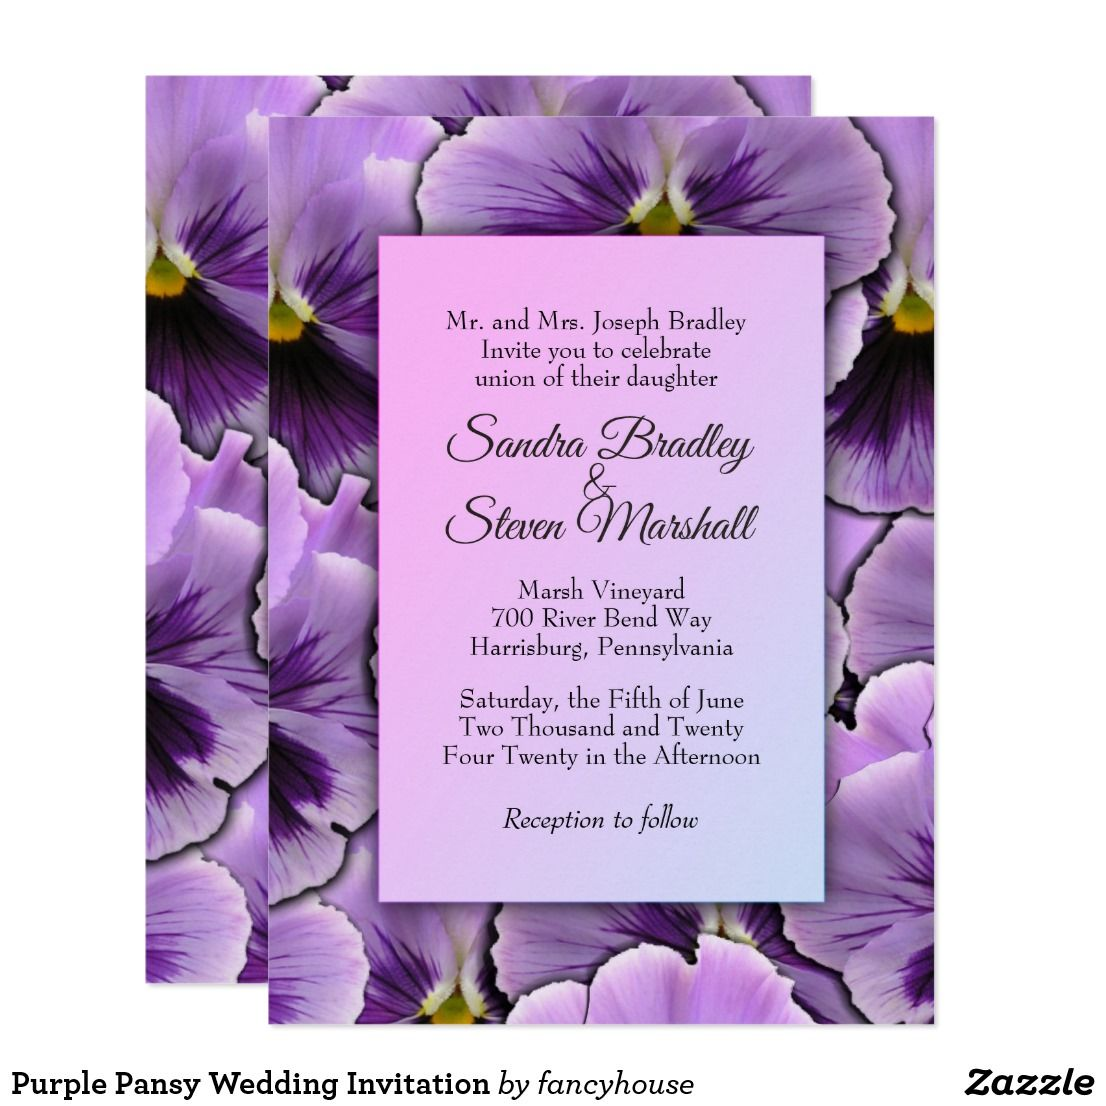 Purple Pansy Wedding Invitation